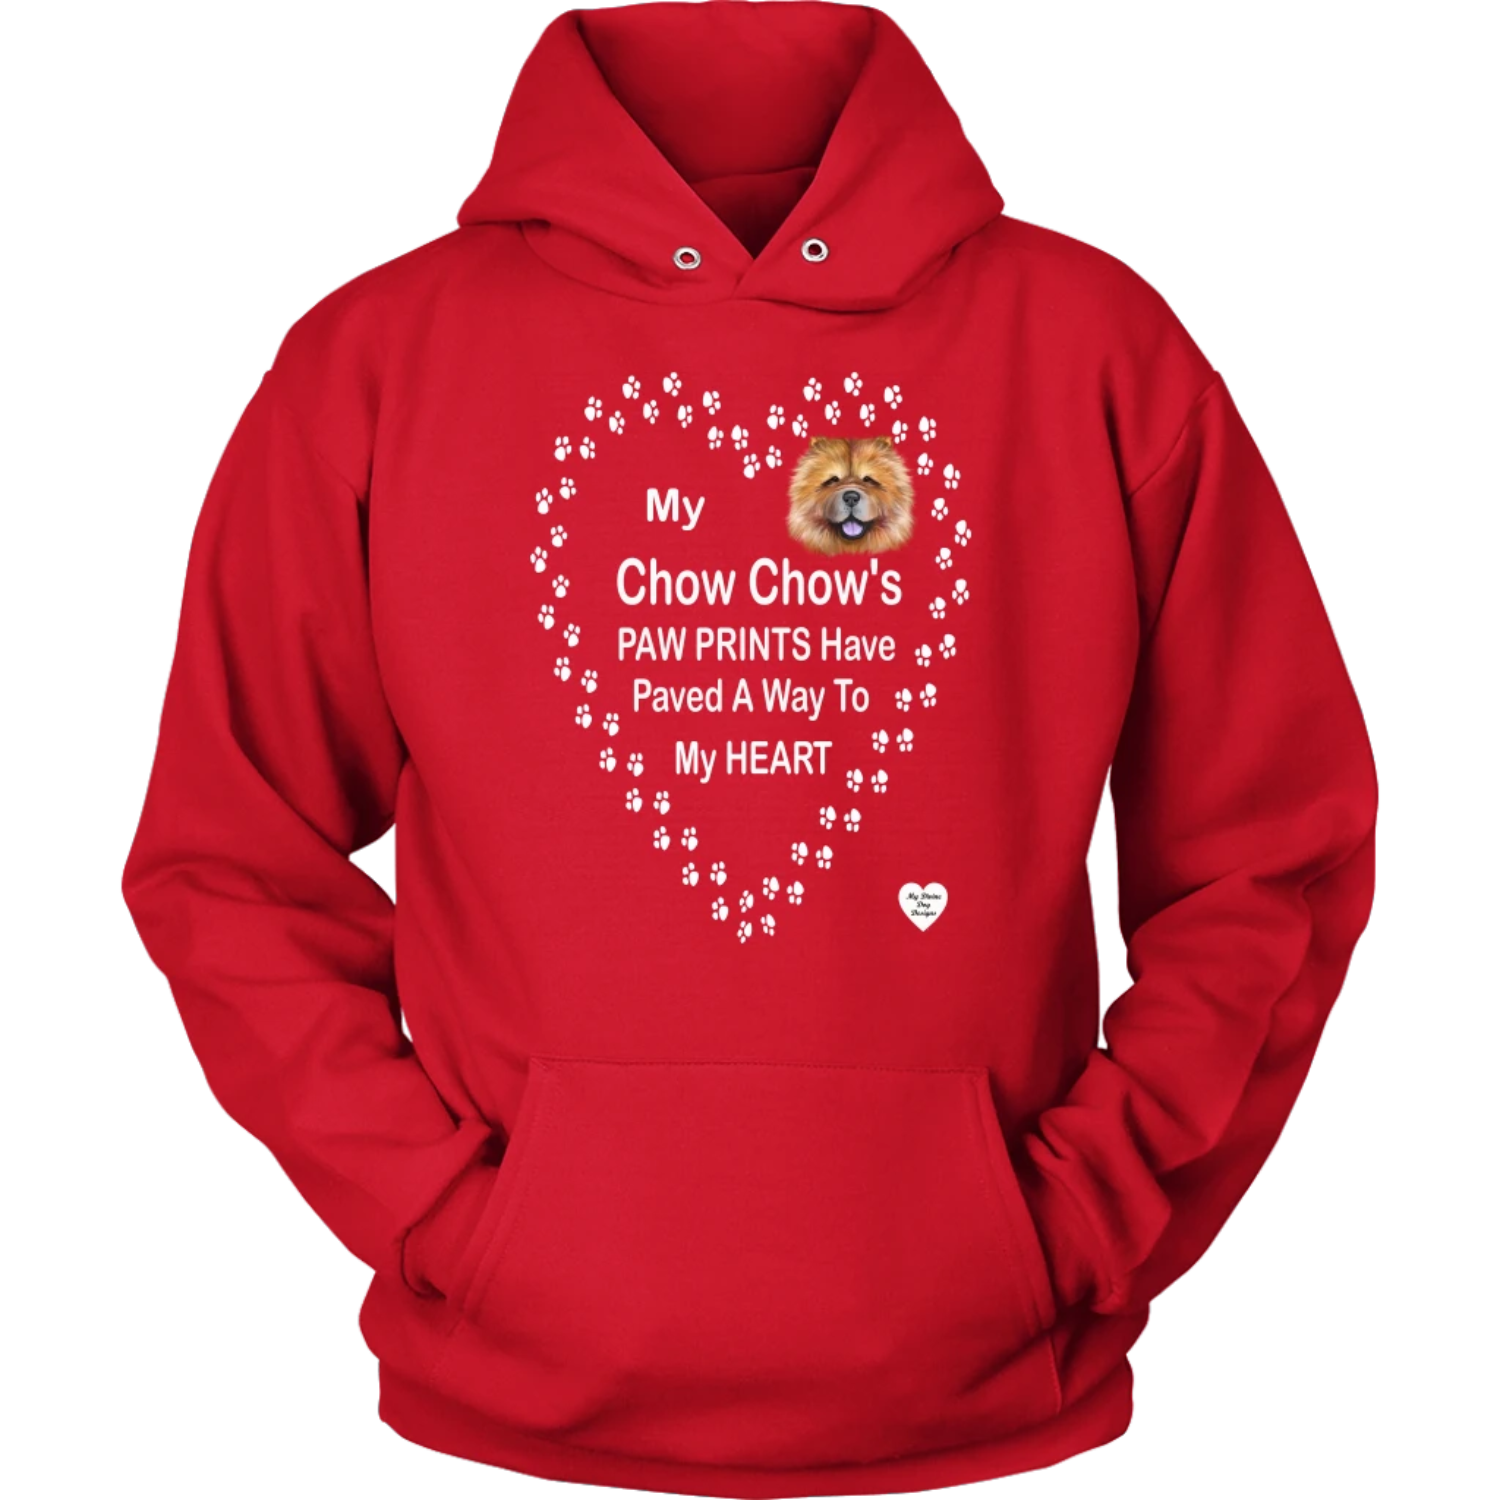 My Chow Chow's Paw Prints - Tan- Hoodie Red